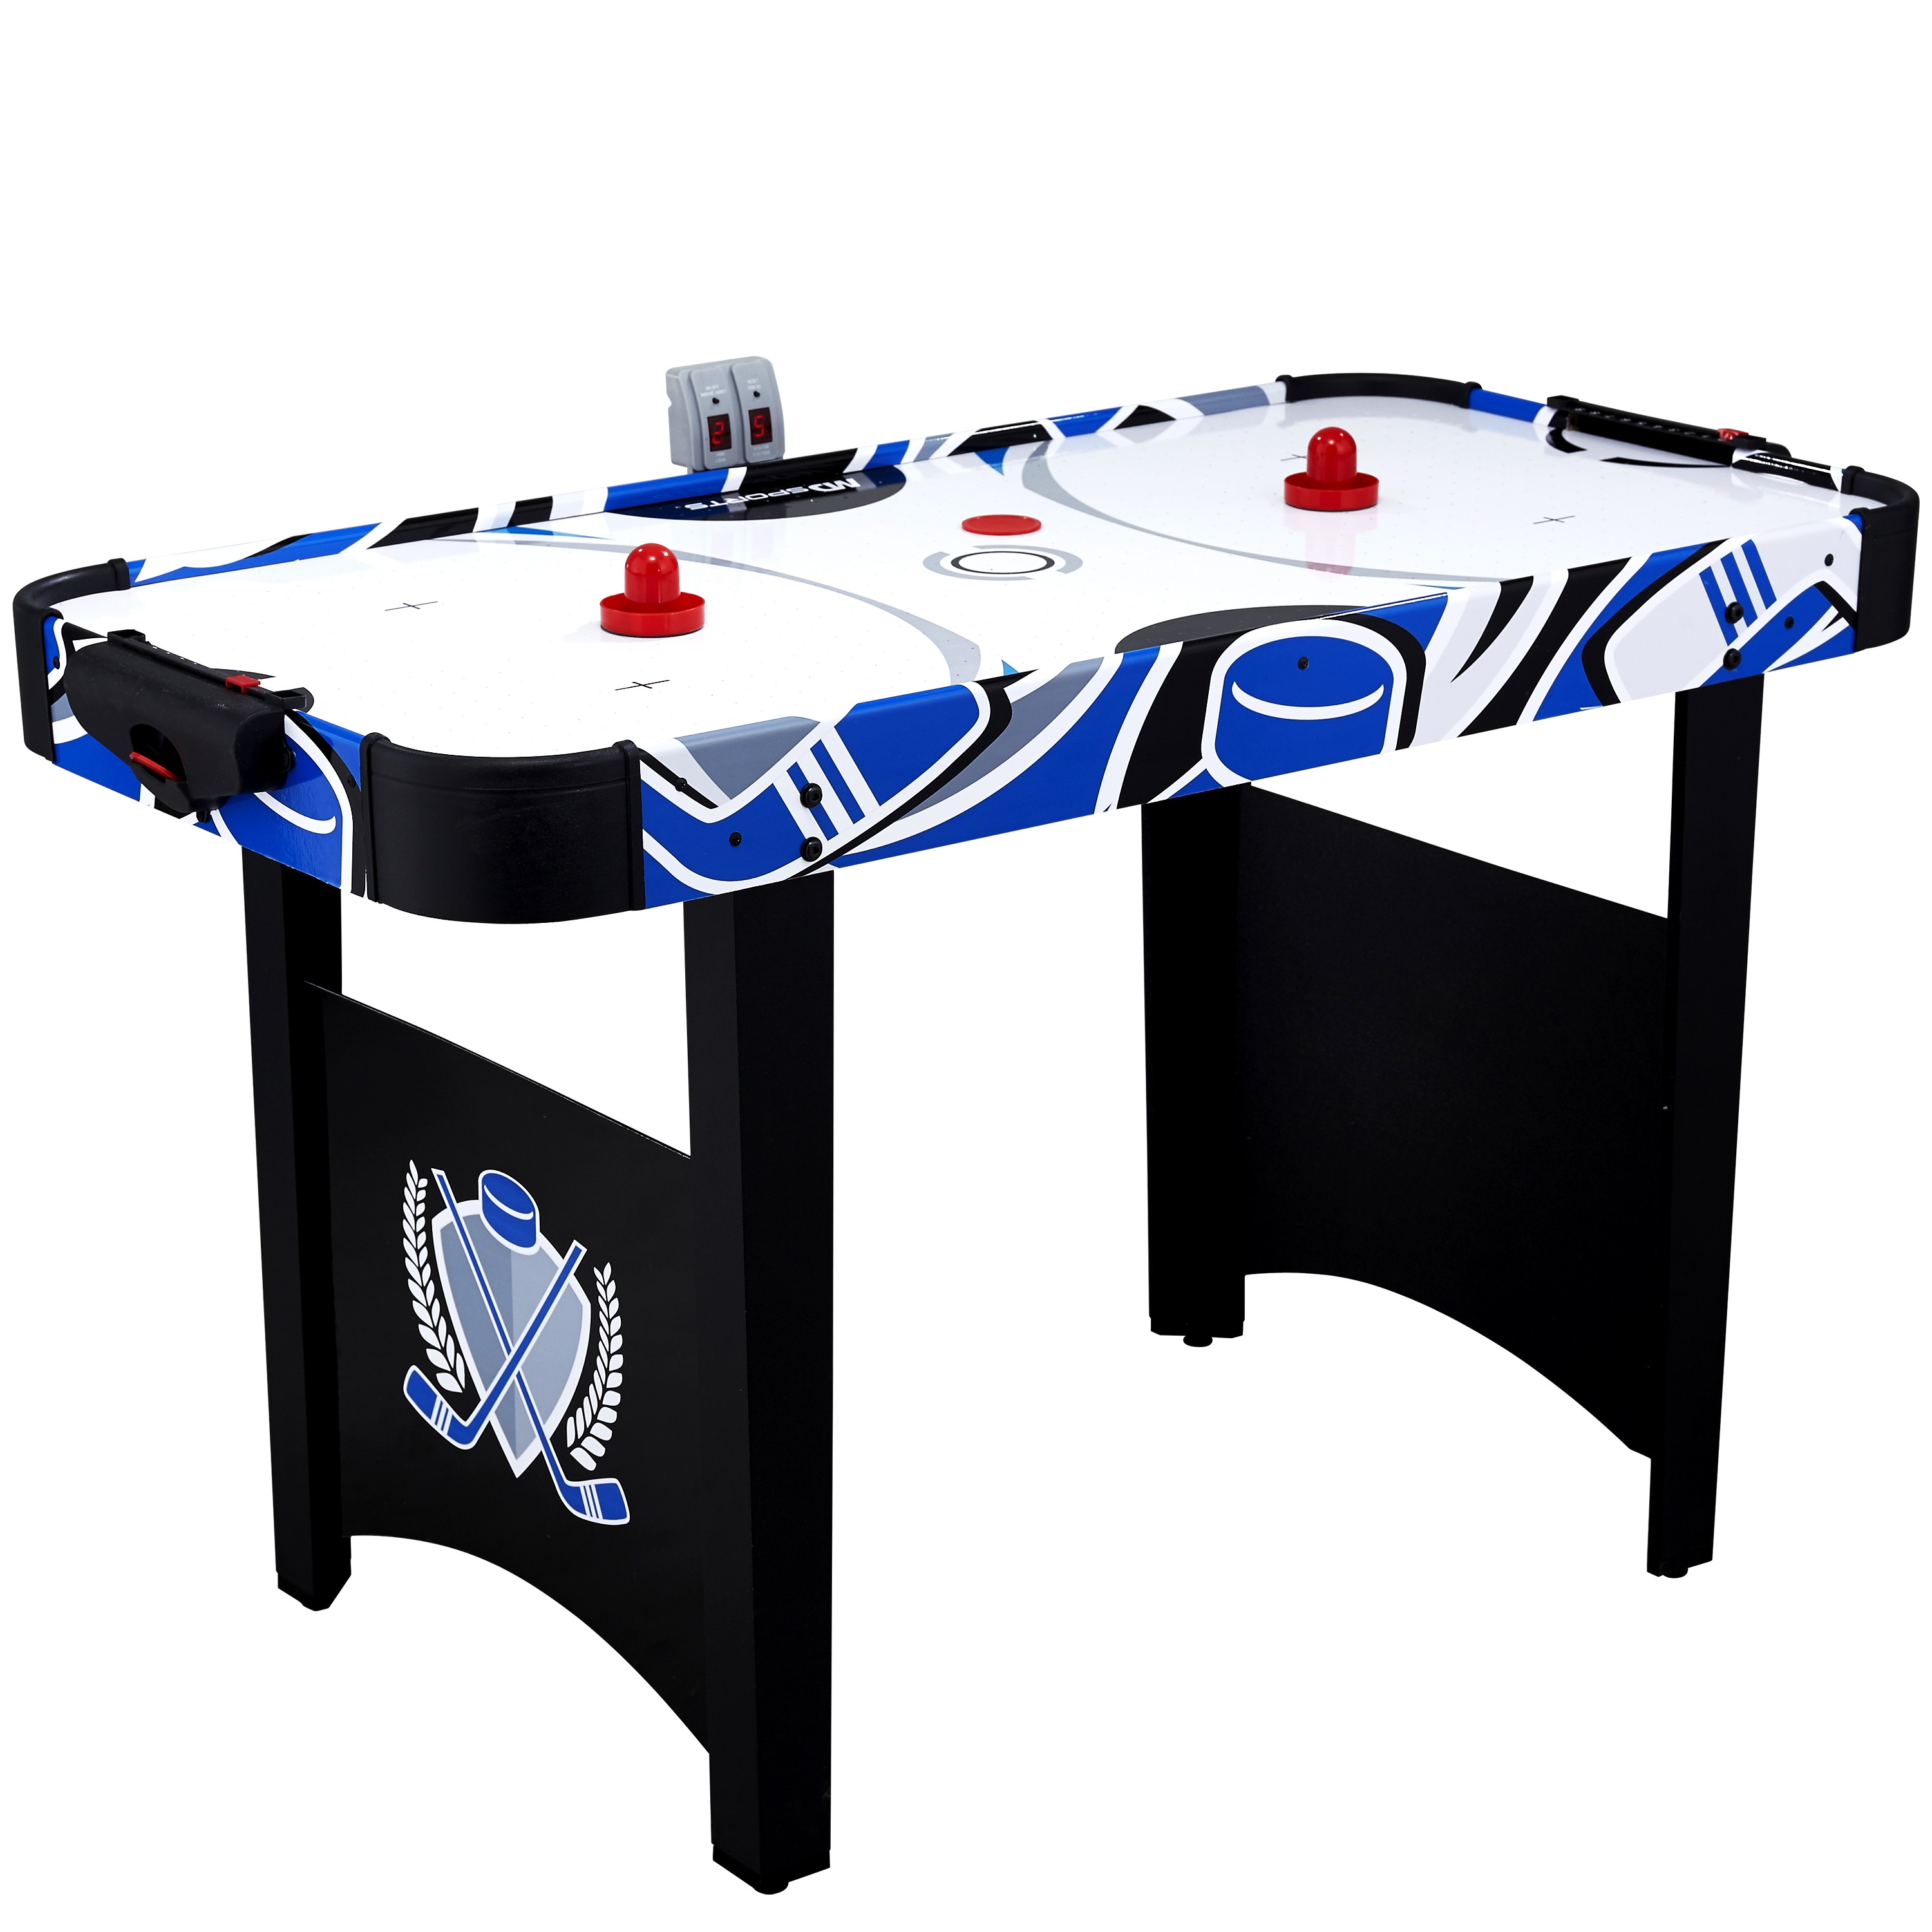 MD Sports 48 Inch Air Powered Hockey Table